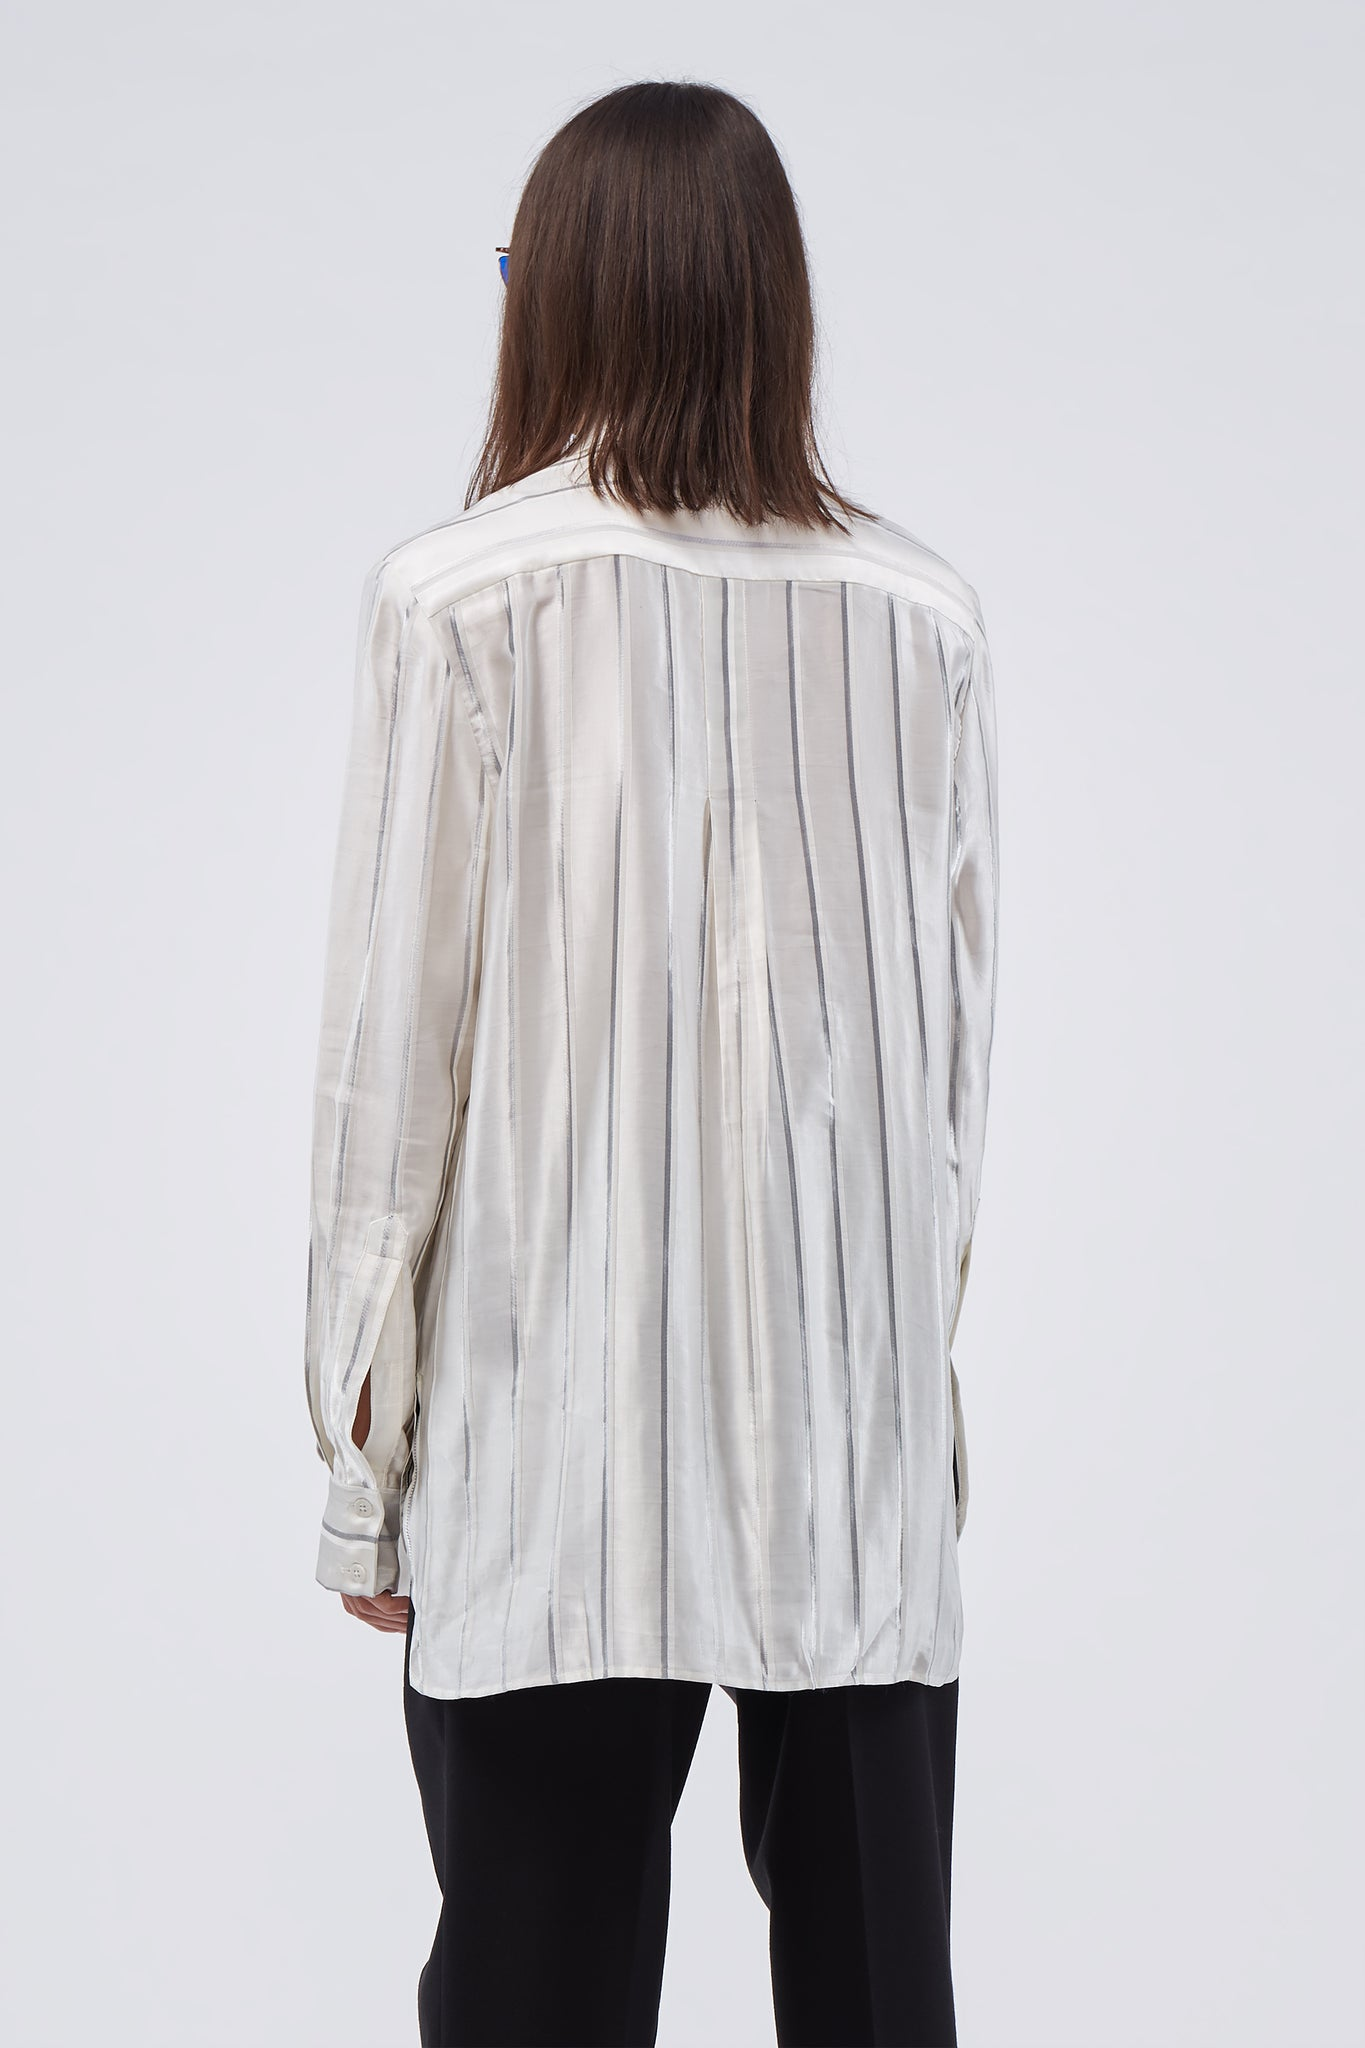 Ted Loose LS Shirt Infernal Angel Silver White Stripe